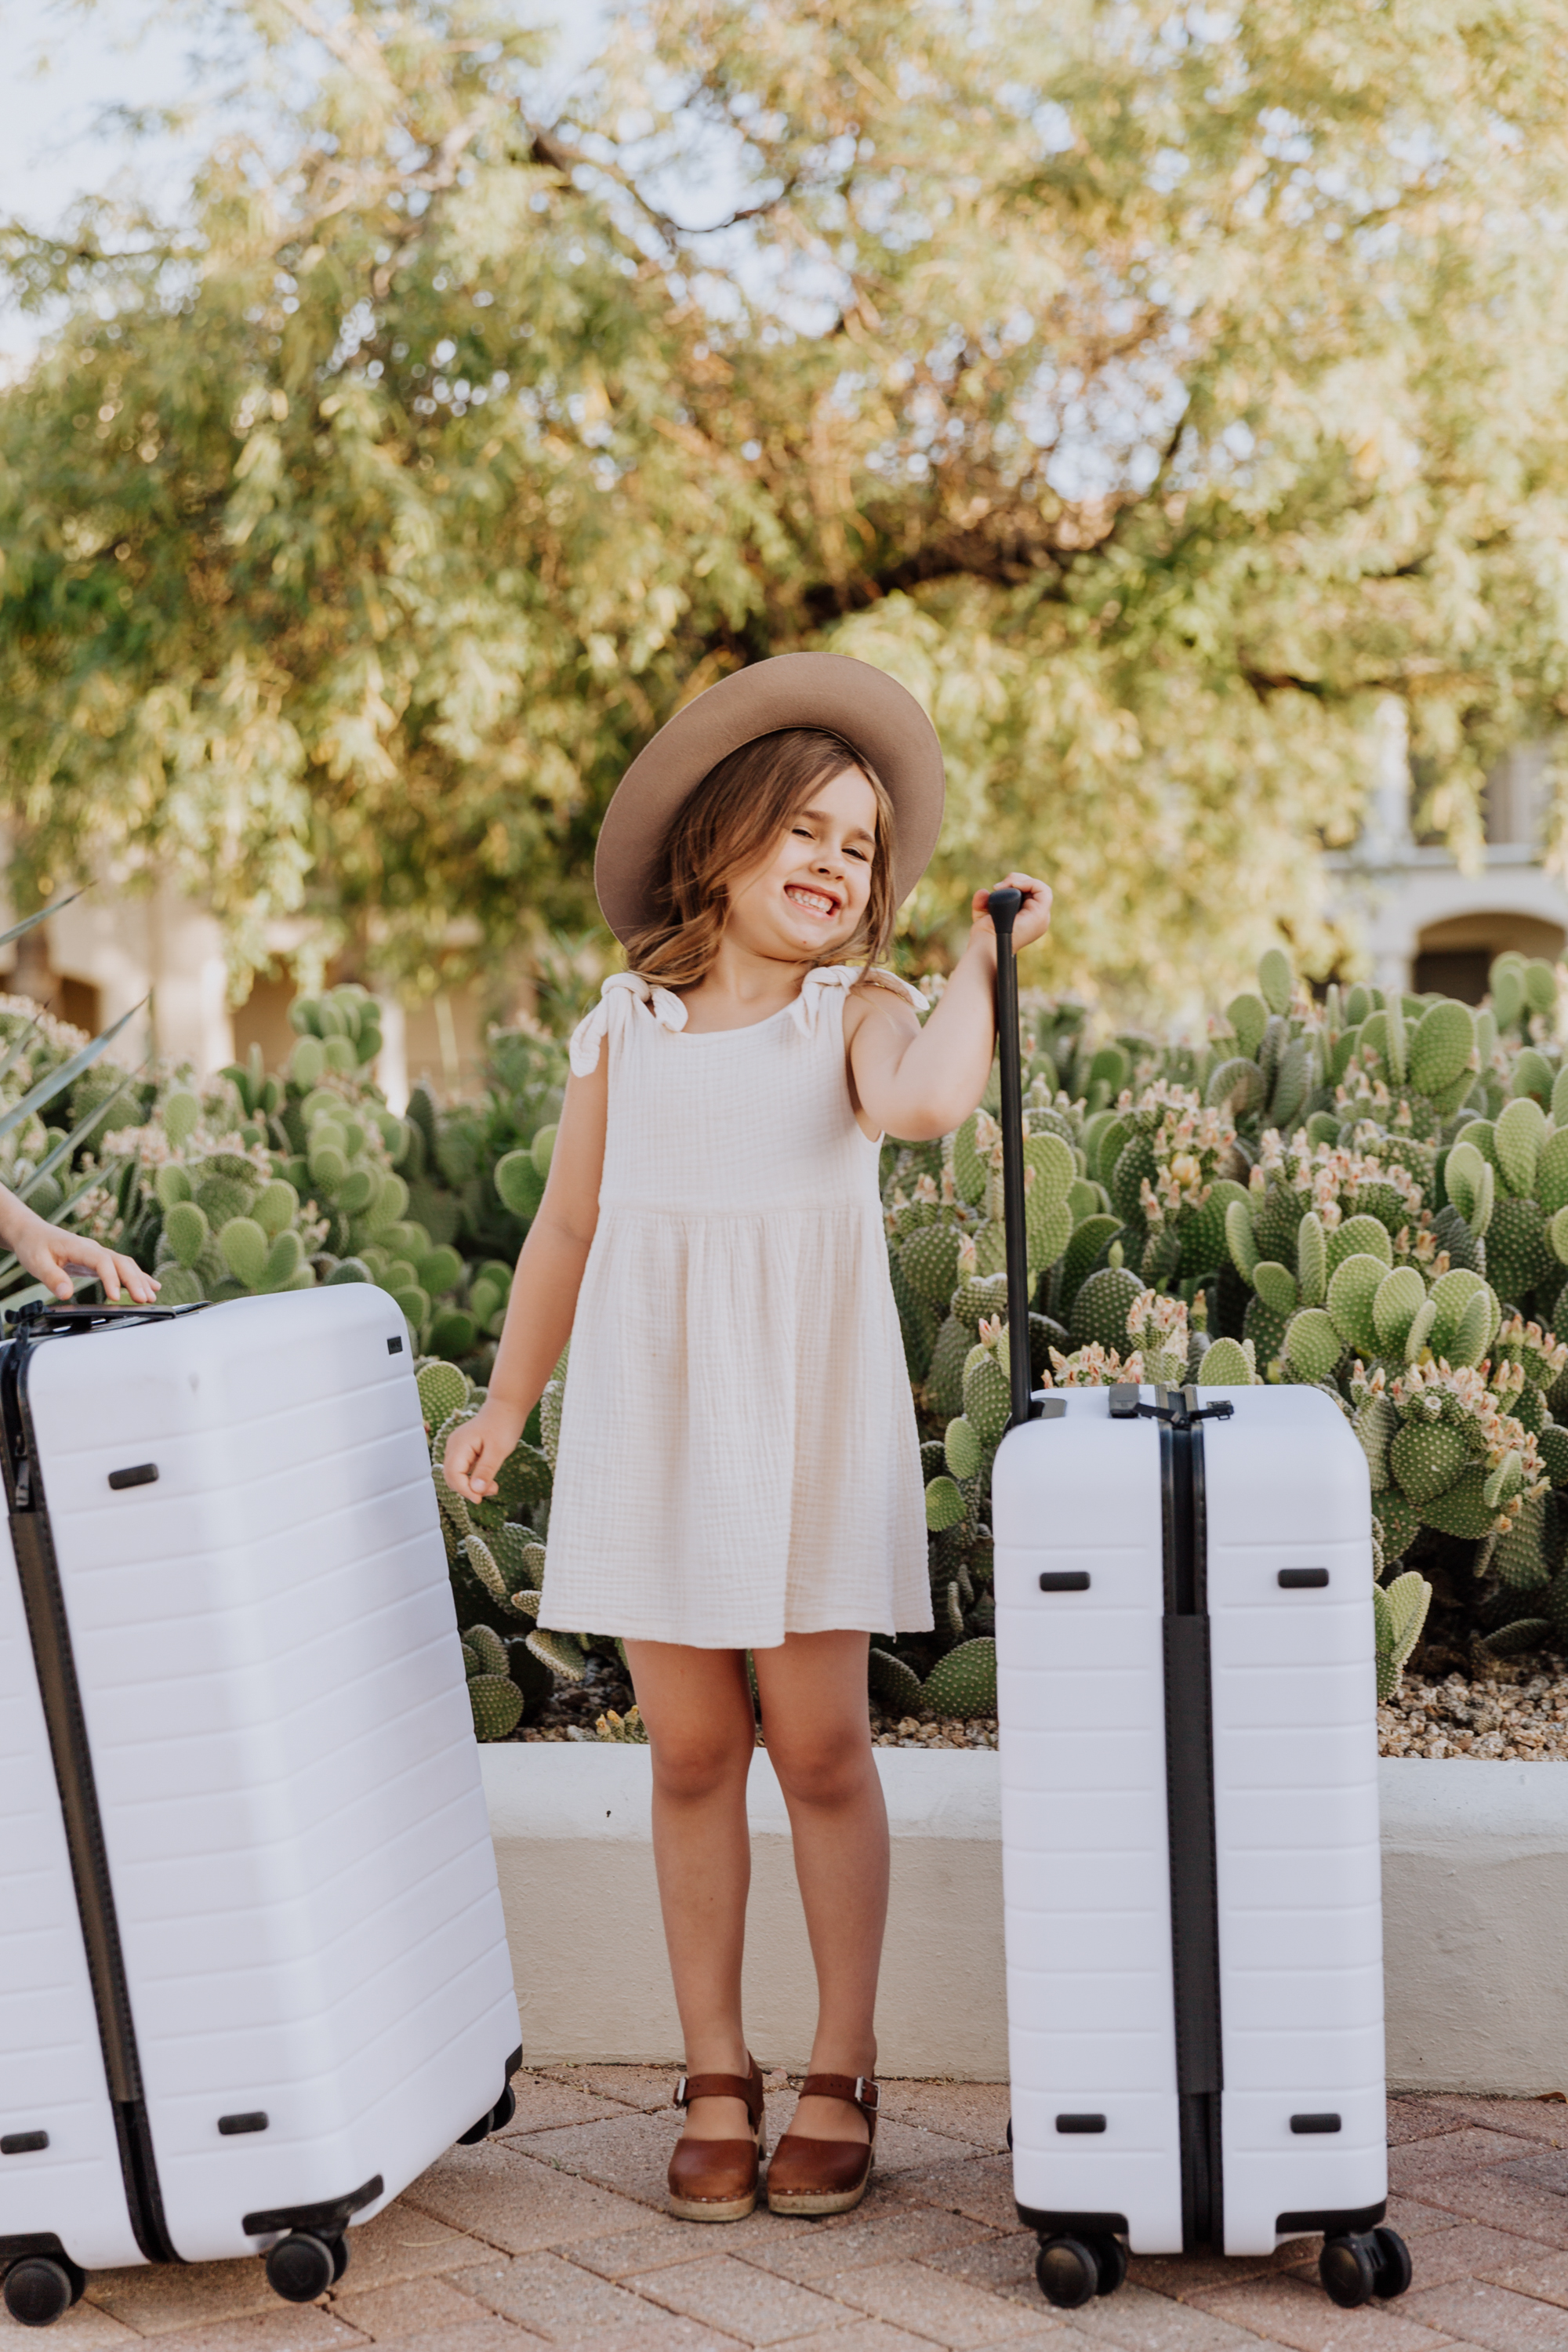 that summertime vacation feeling. bags are packed and ready to go!